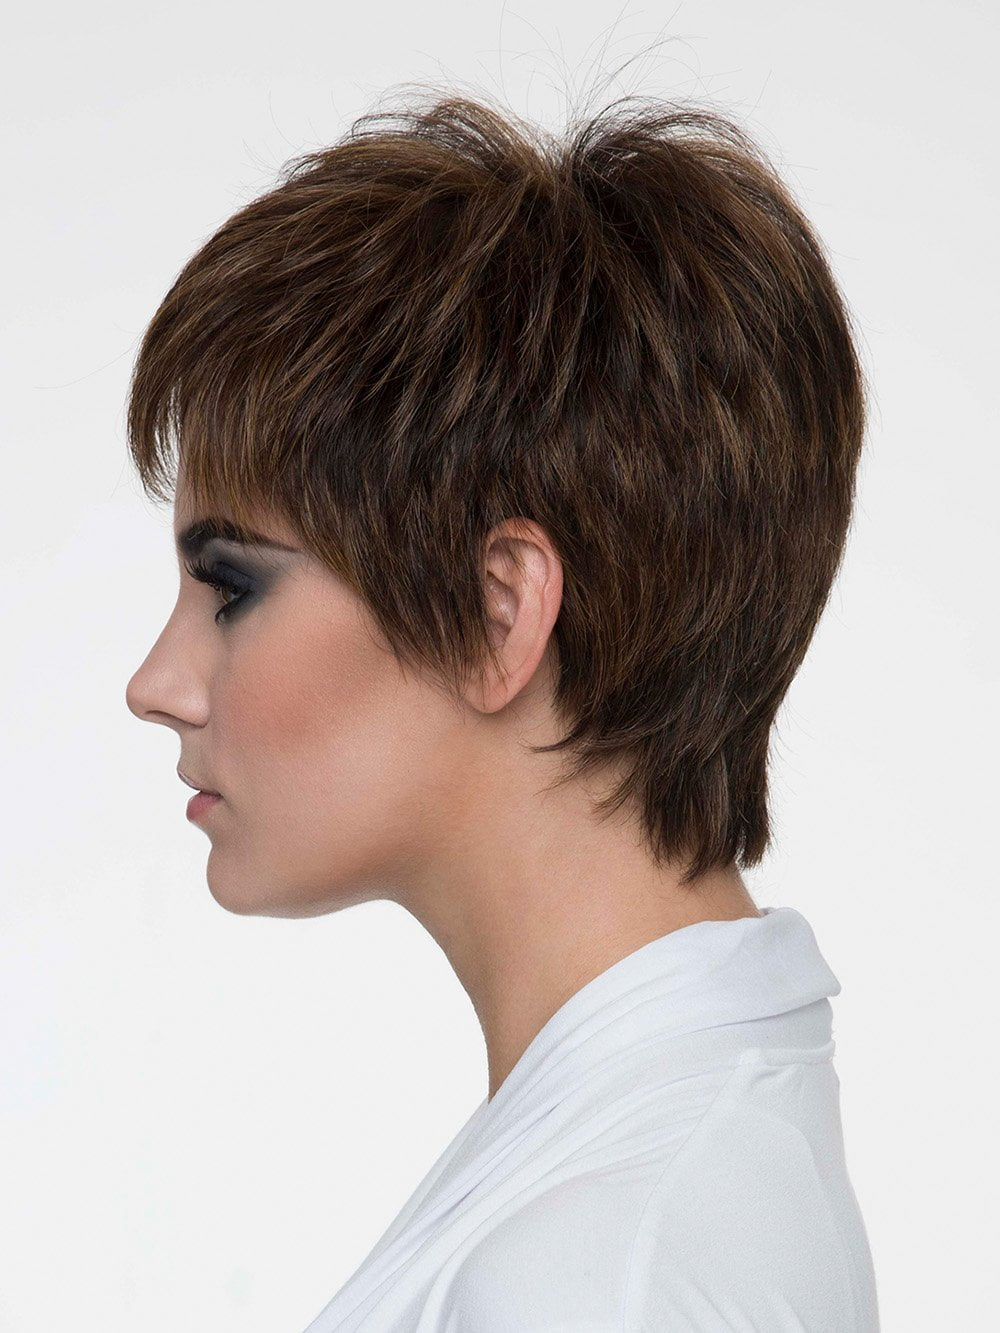 Flat iron for a spiky edge or heat roll for a softer appearance